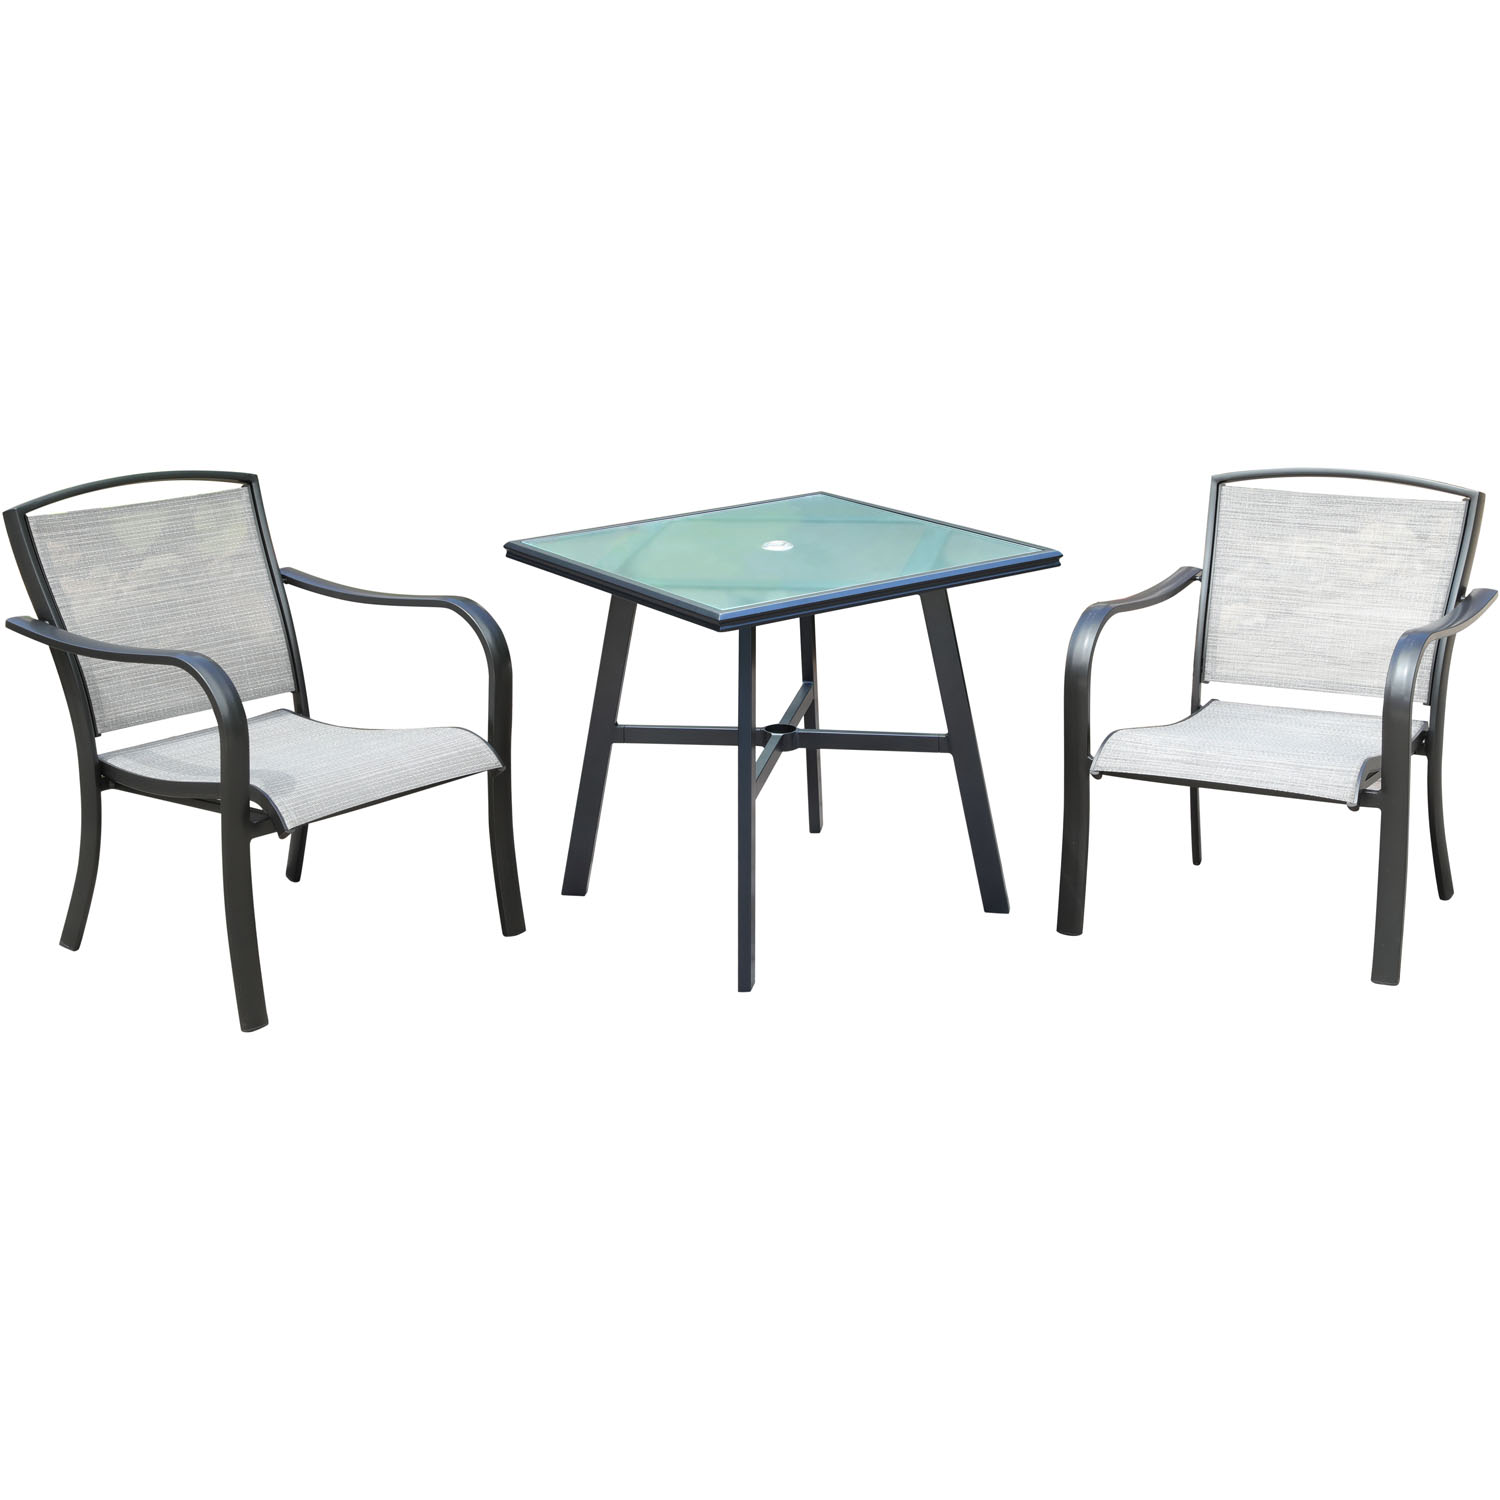 Picture of: Hanover Foxhill 3 Piece Commercial Grade Bistro Set With 2 Sling Dining Chairs And A 30 Square Glass Top Table Walmart Com Walmart Com